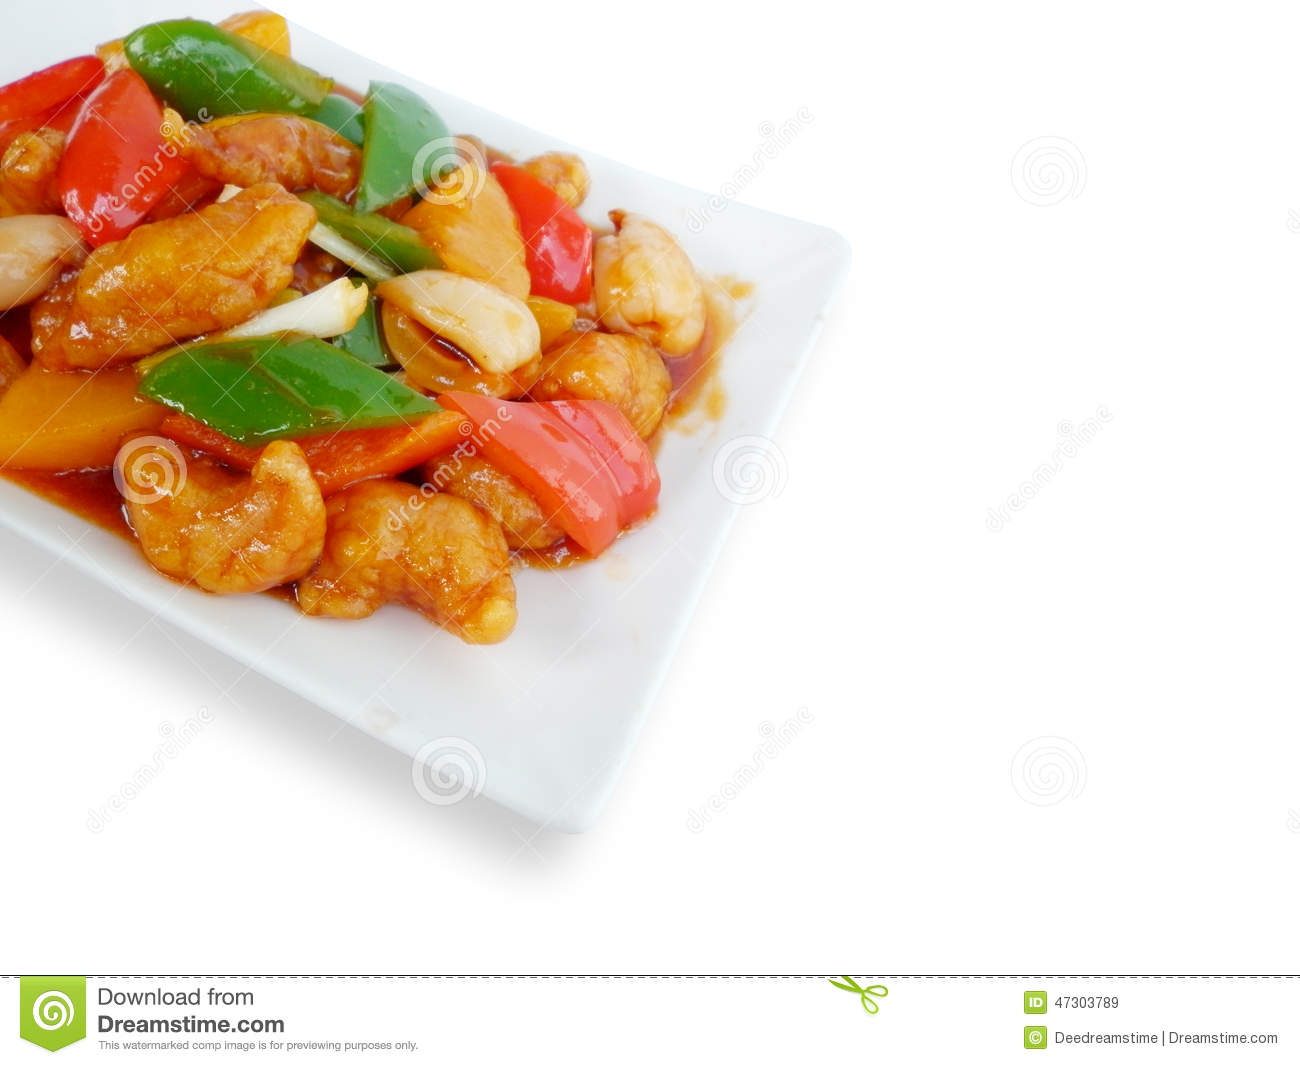 Sweet And Sour Pork With Fruit Salad Stock Image - Image ...